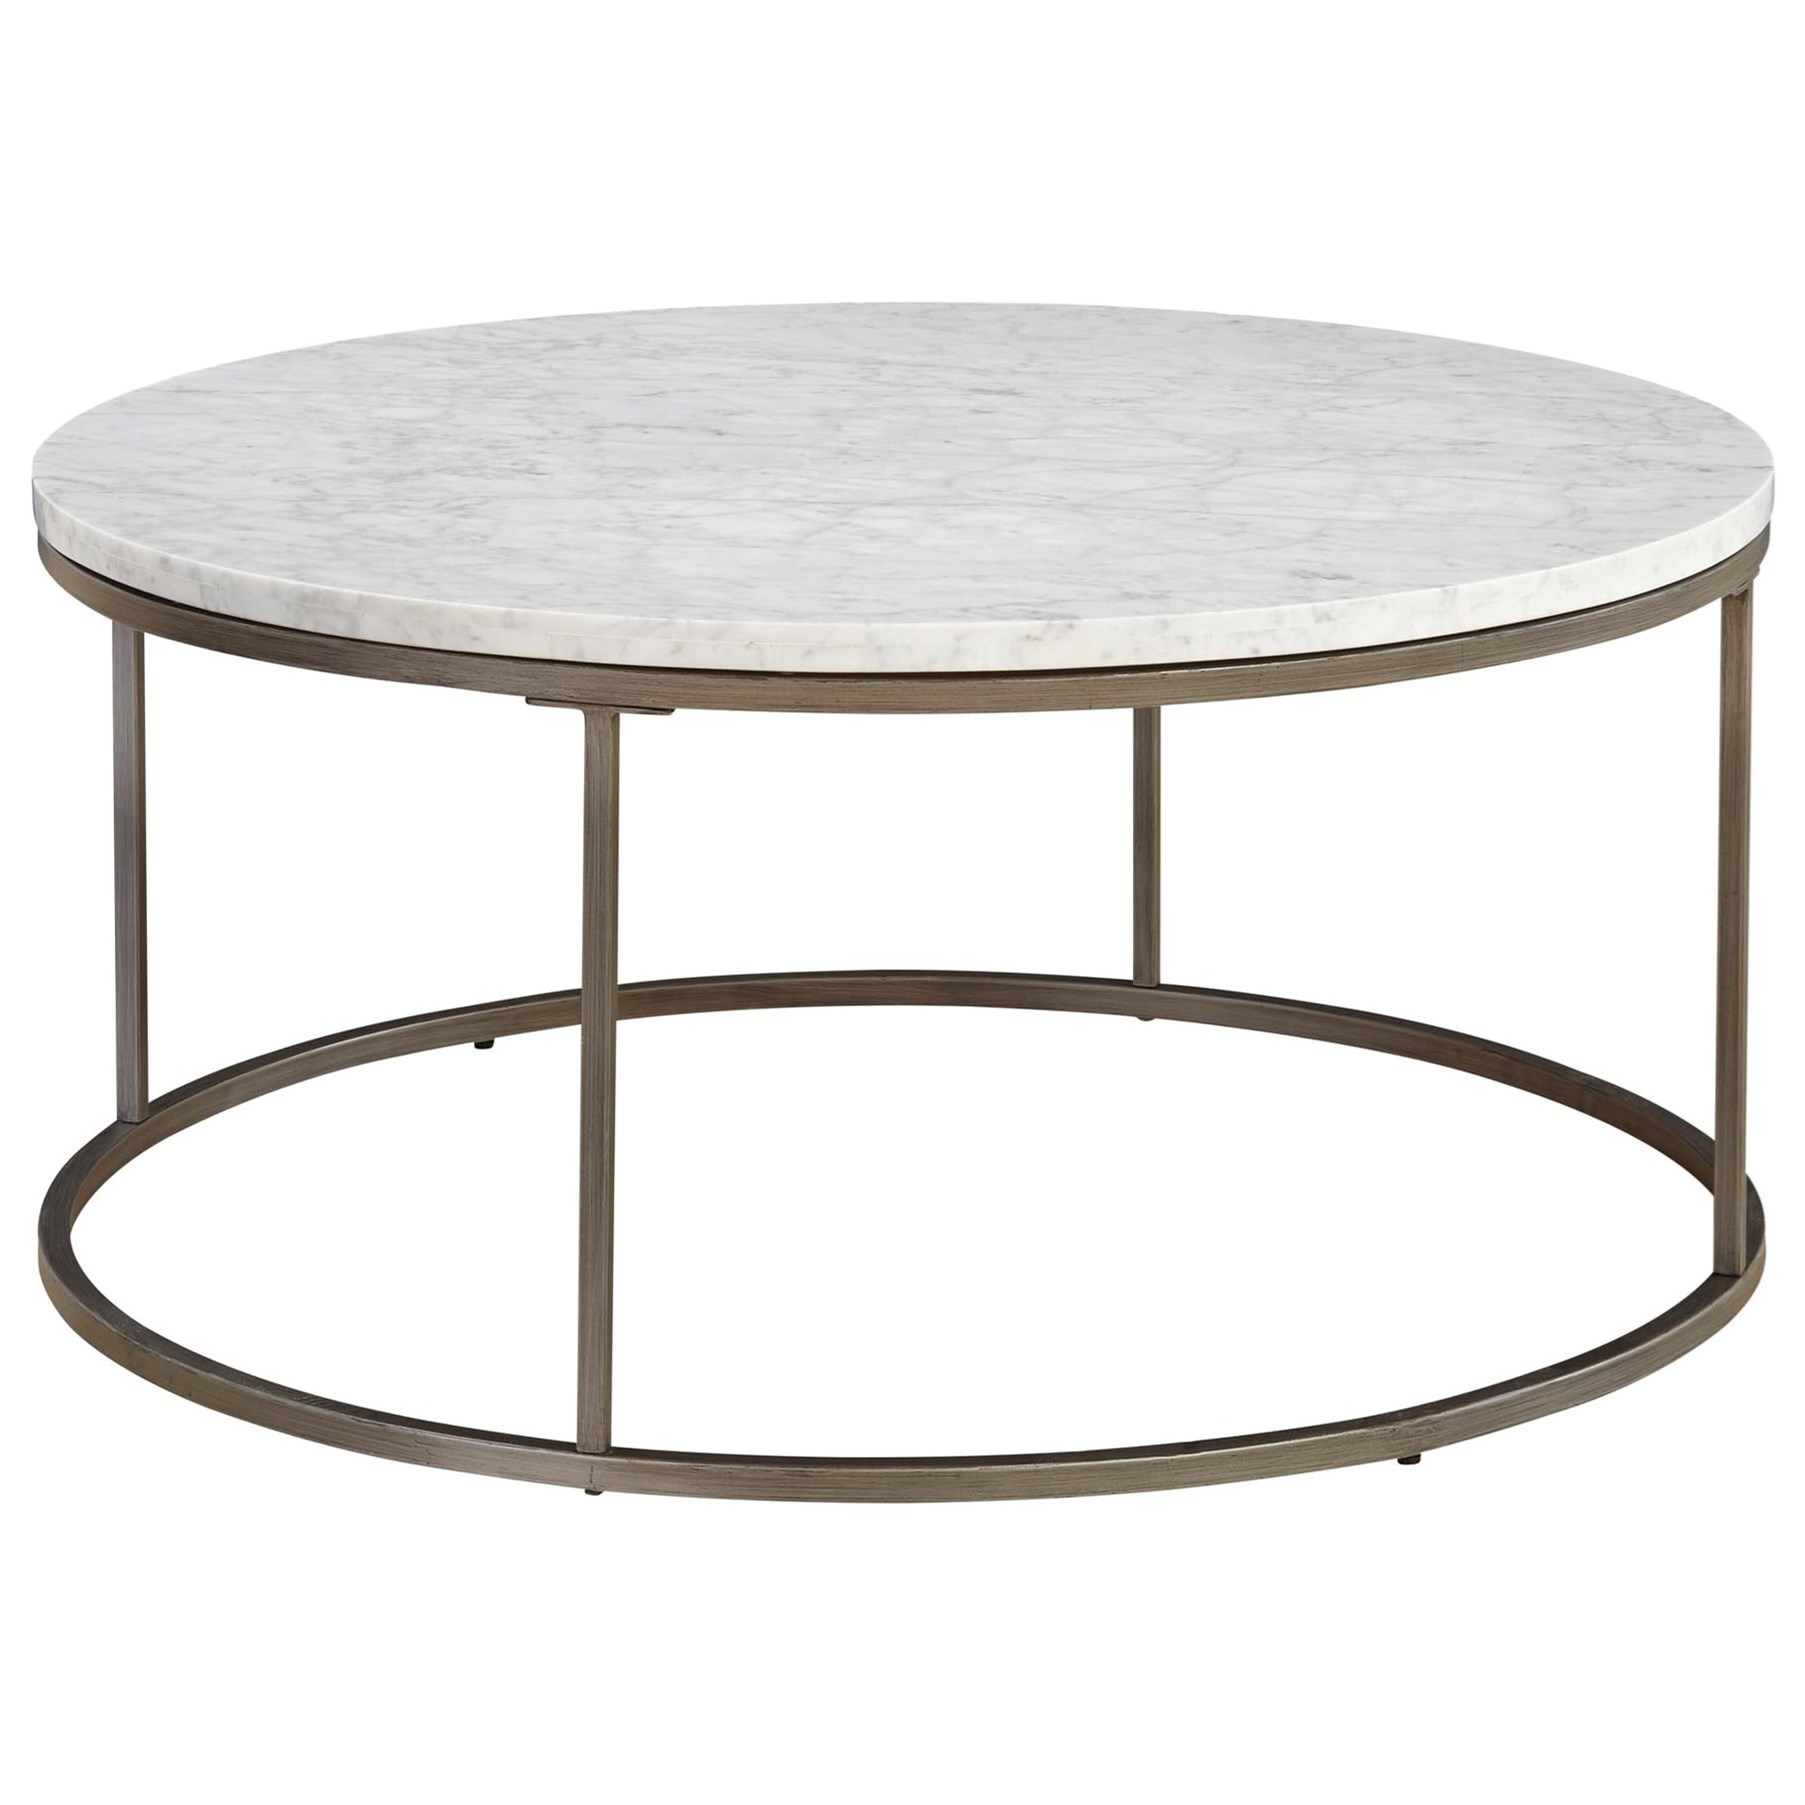 Black Marble Coffee Table Canada: Casana Julien Round Cocktail Table With Marble Top